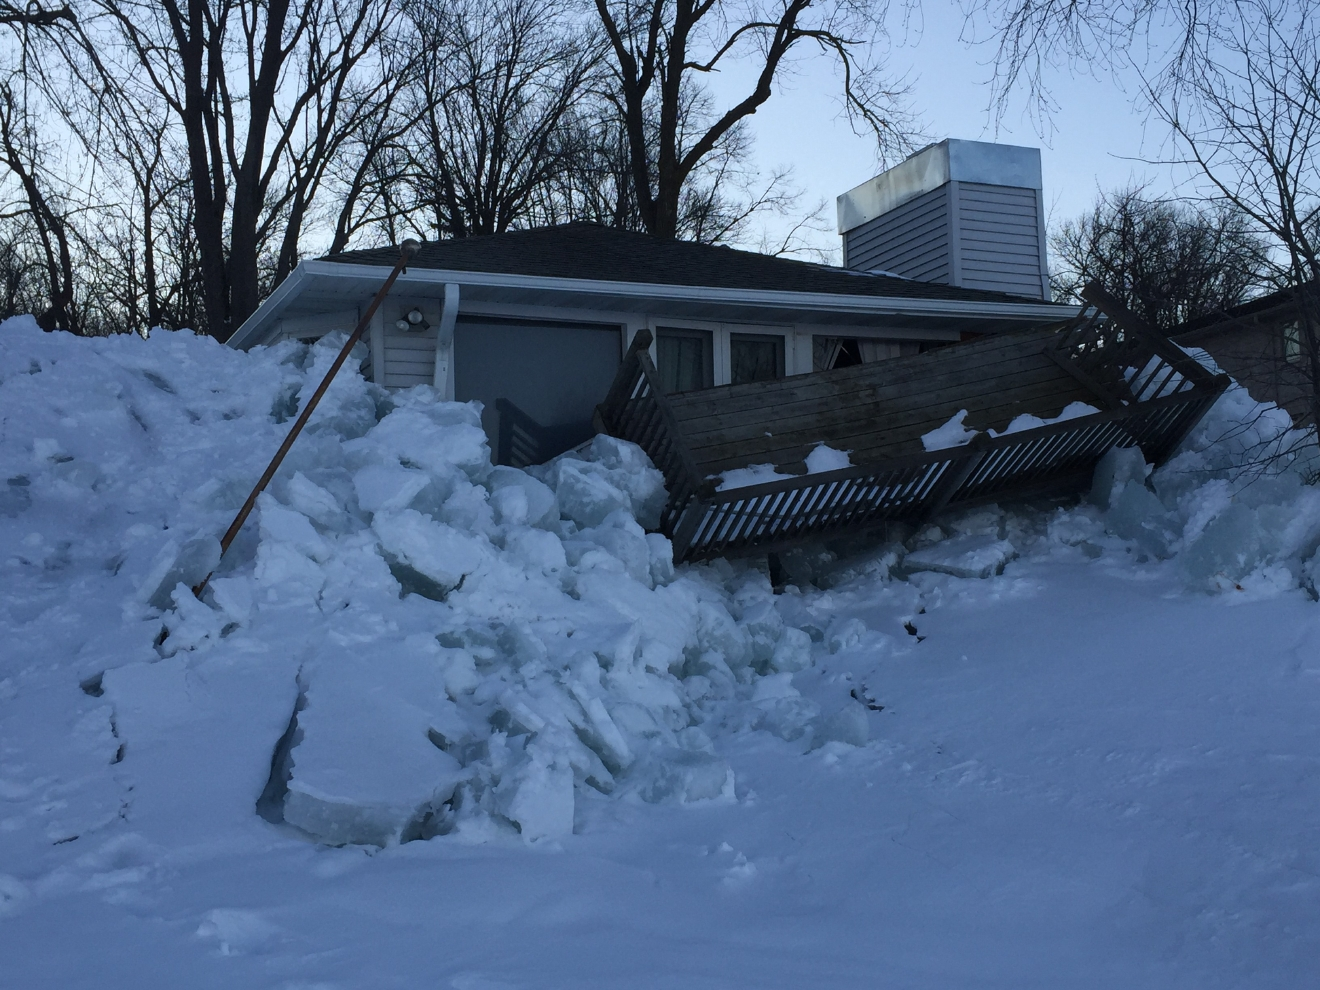 Justin Steinbrinck spent the morning in Stockbridge to see the damage, and hear about how waterfront property owners deal with and prepare for this annual winter phenomenon. (March 3, 2017/ Justin Steinbrinck)